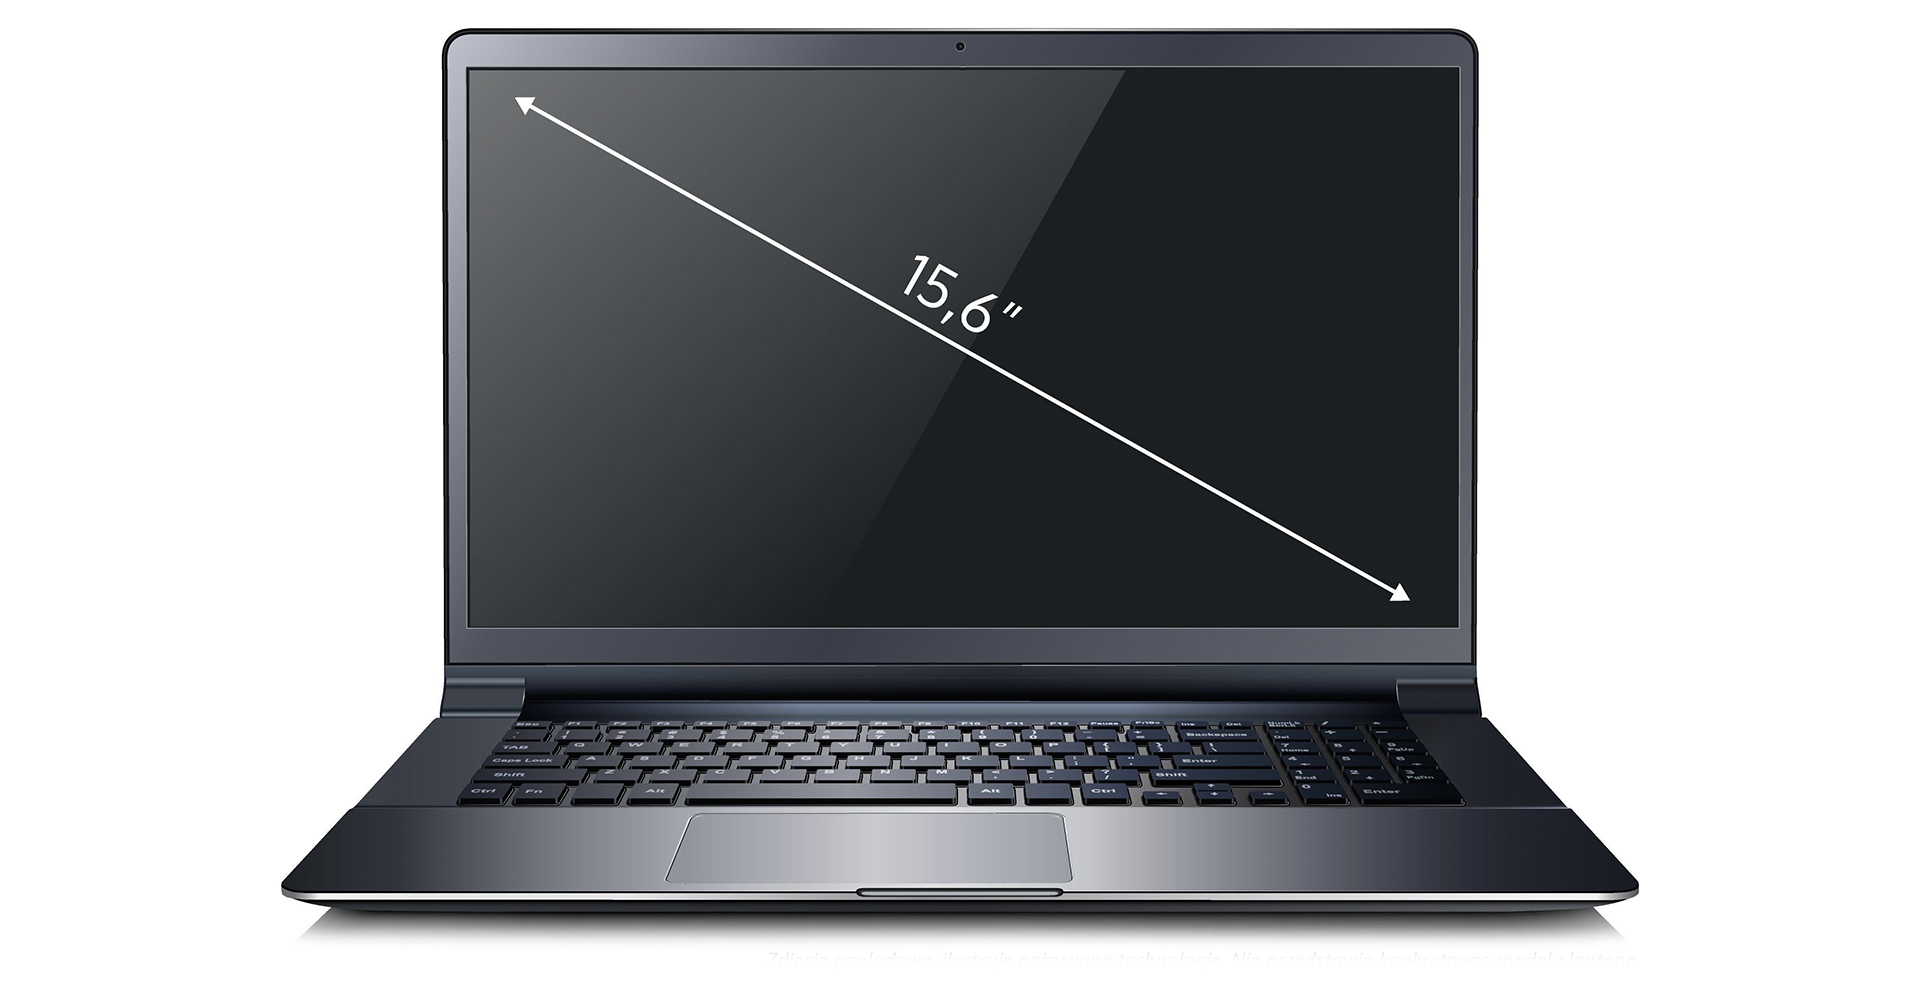 Fujitsu LifeBook A357 (S26391K425V300) 24 GB RAM/ 256 GB SSD/ Windows 10 Pro                             15.6-tollise diagonaaliga